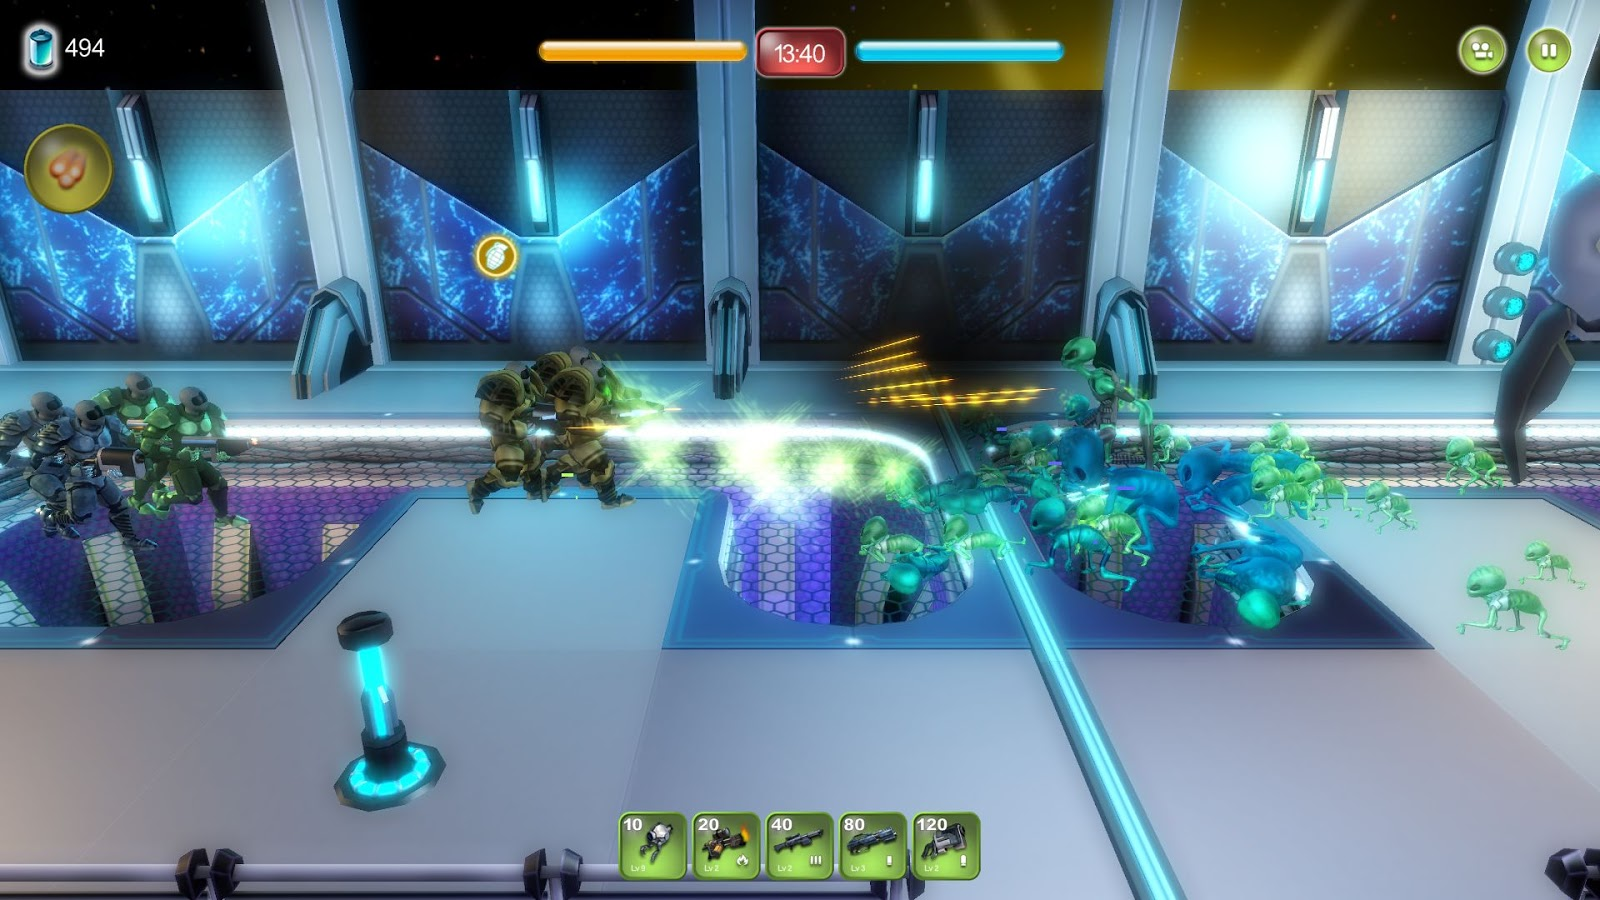 Alien-Hallway-Screenshot-Gameplay-2